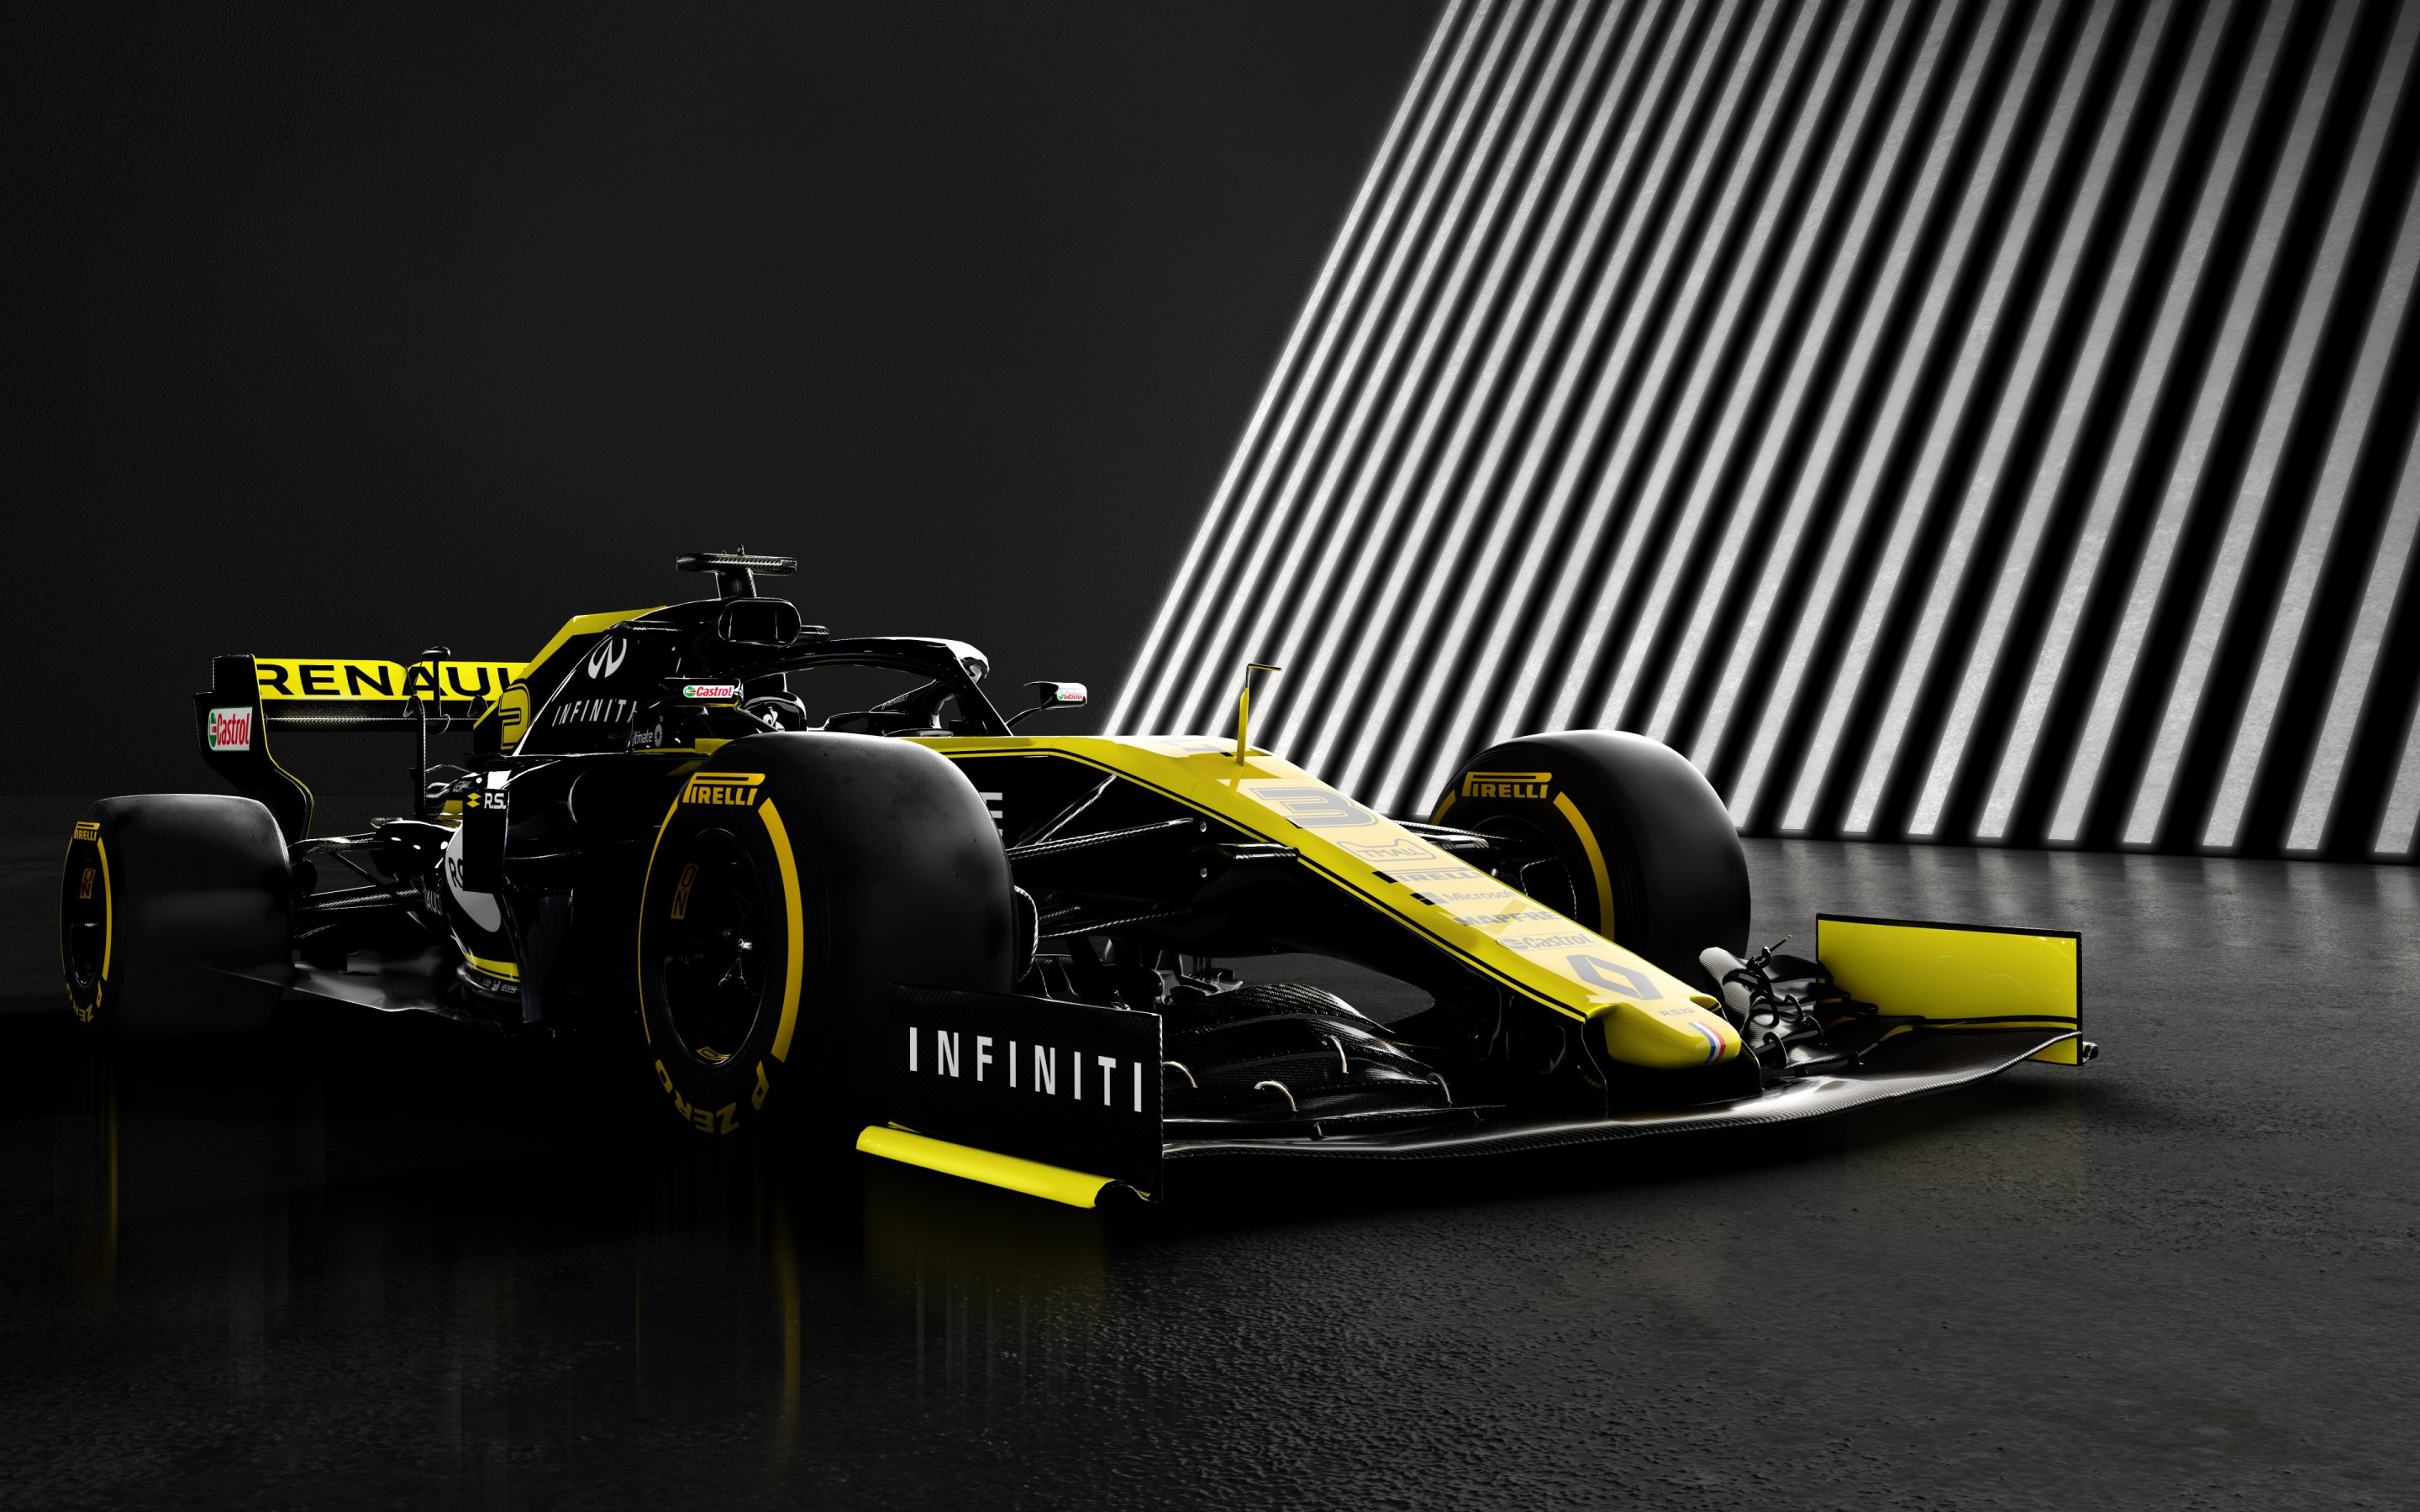 Renault F1 RS19 wallpaper 2880x1800